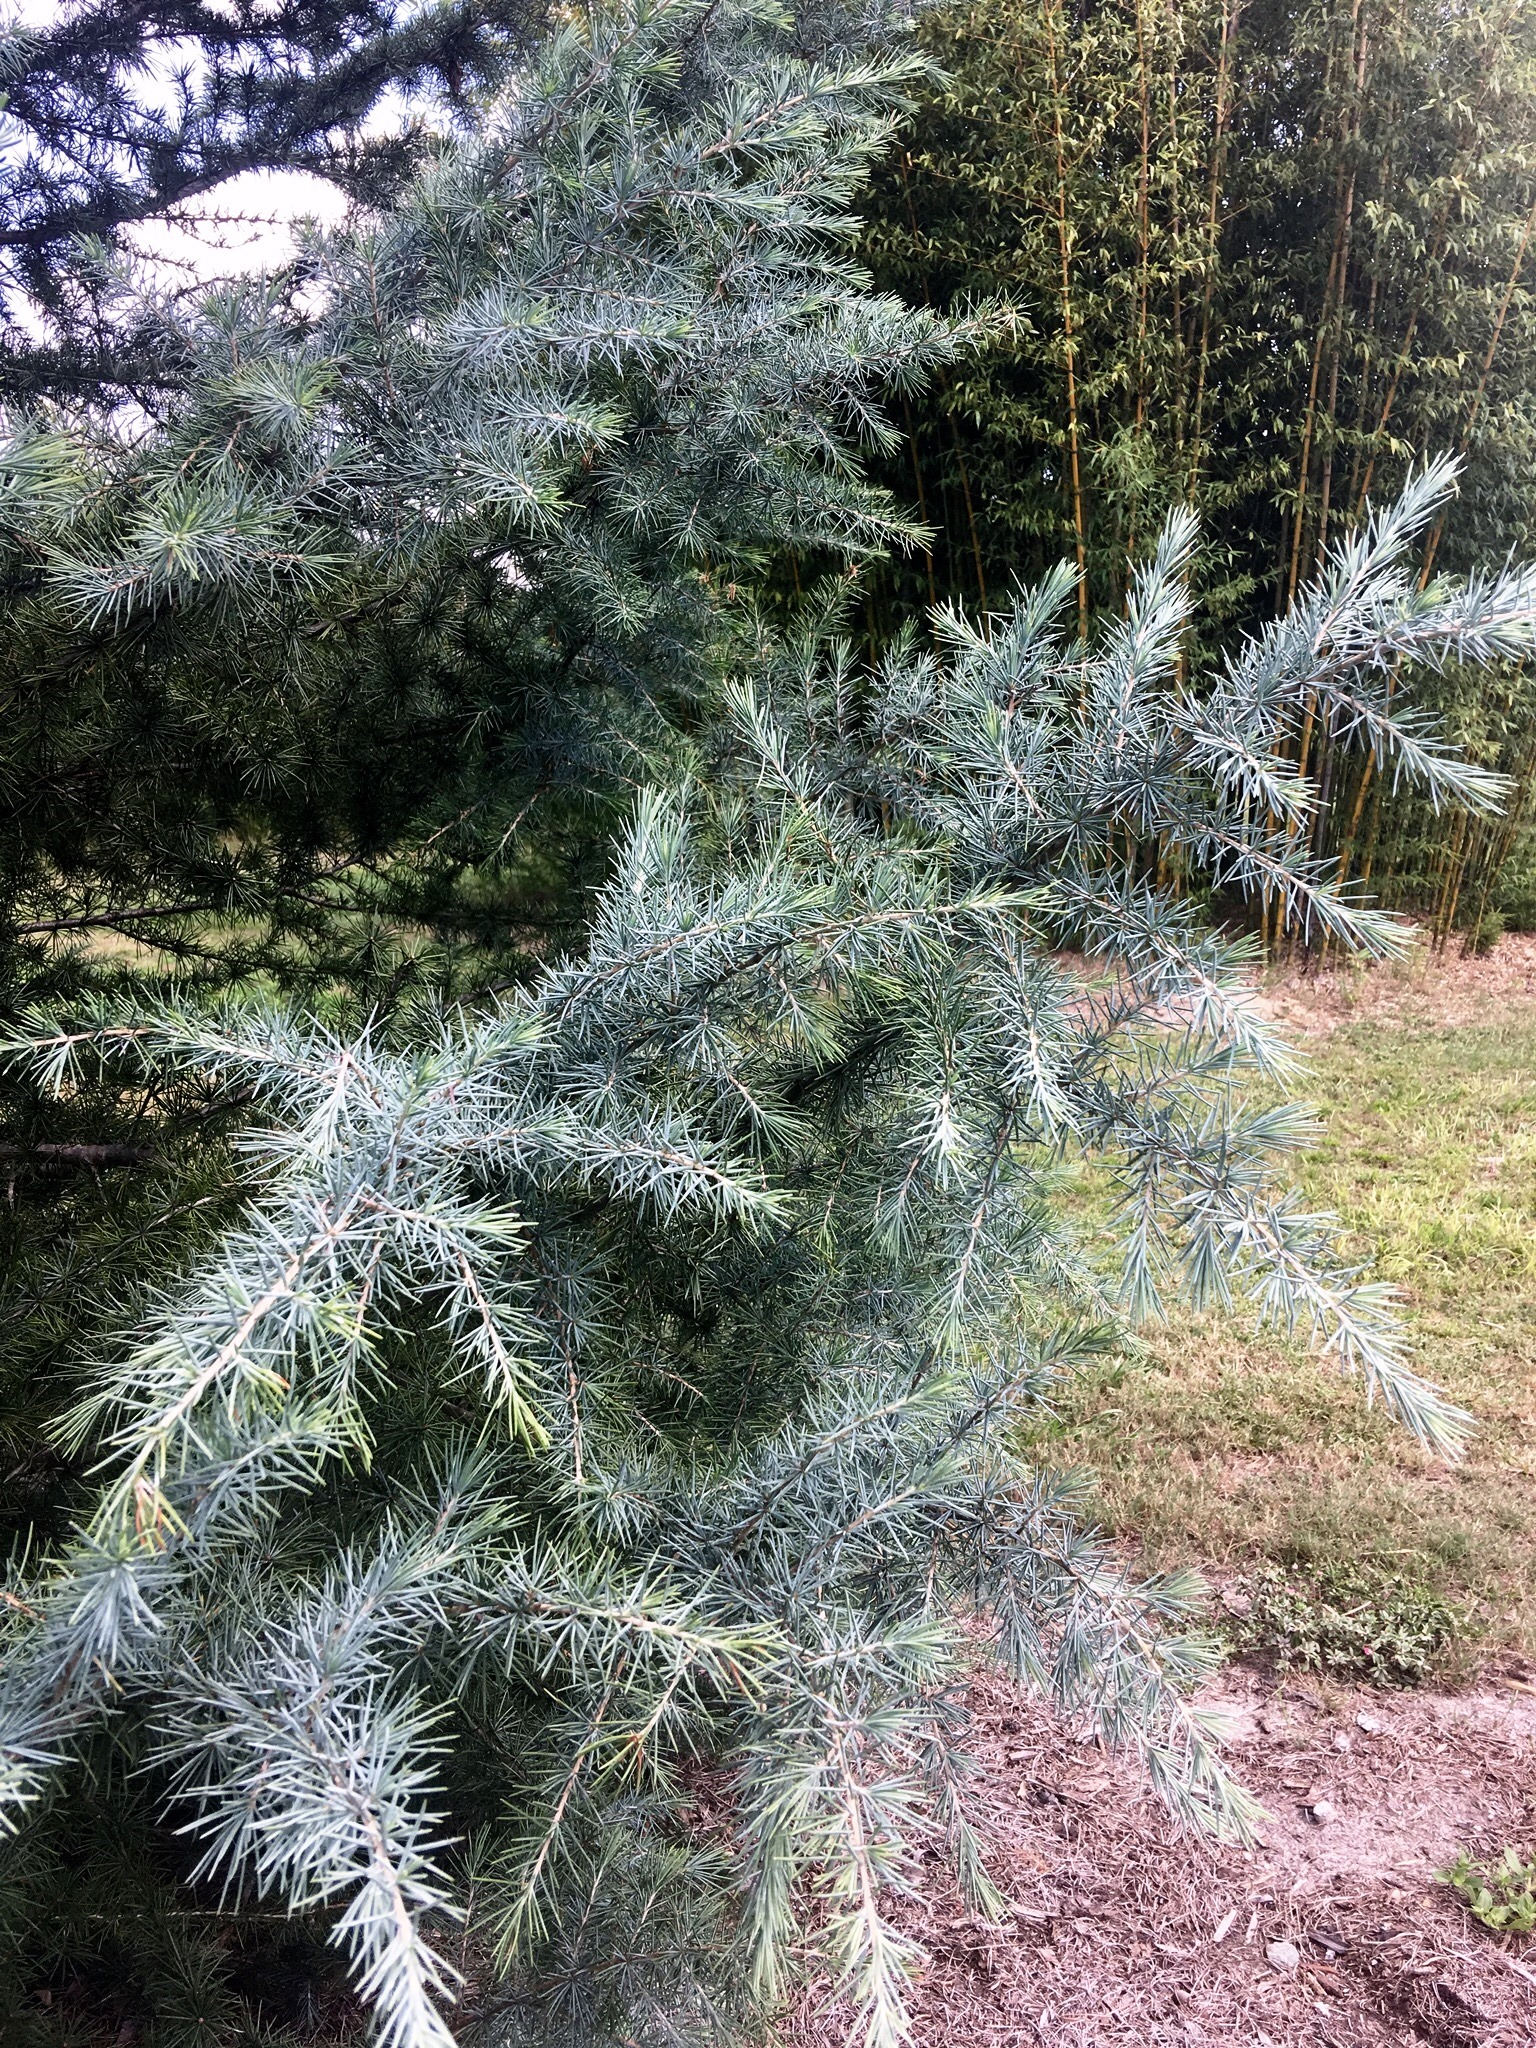 The 'Patti Faye' deodar cedar has steel blue foliage or needles.